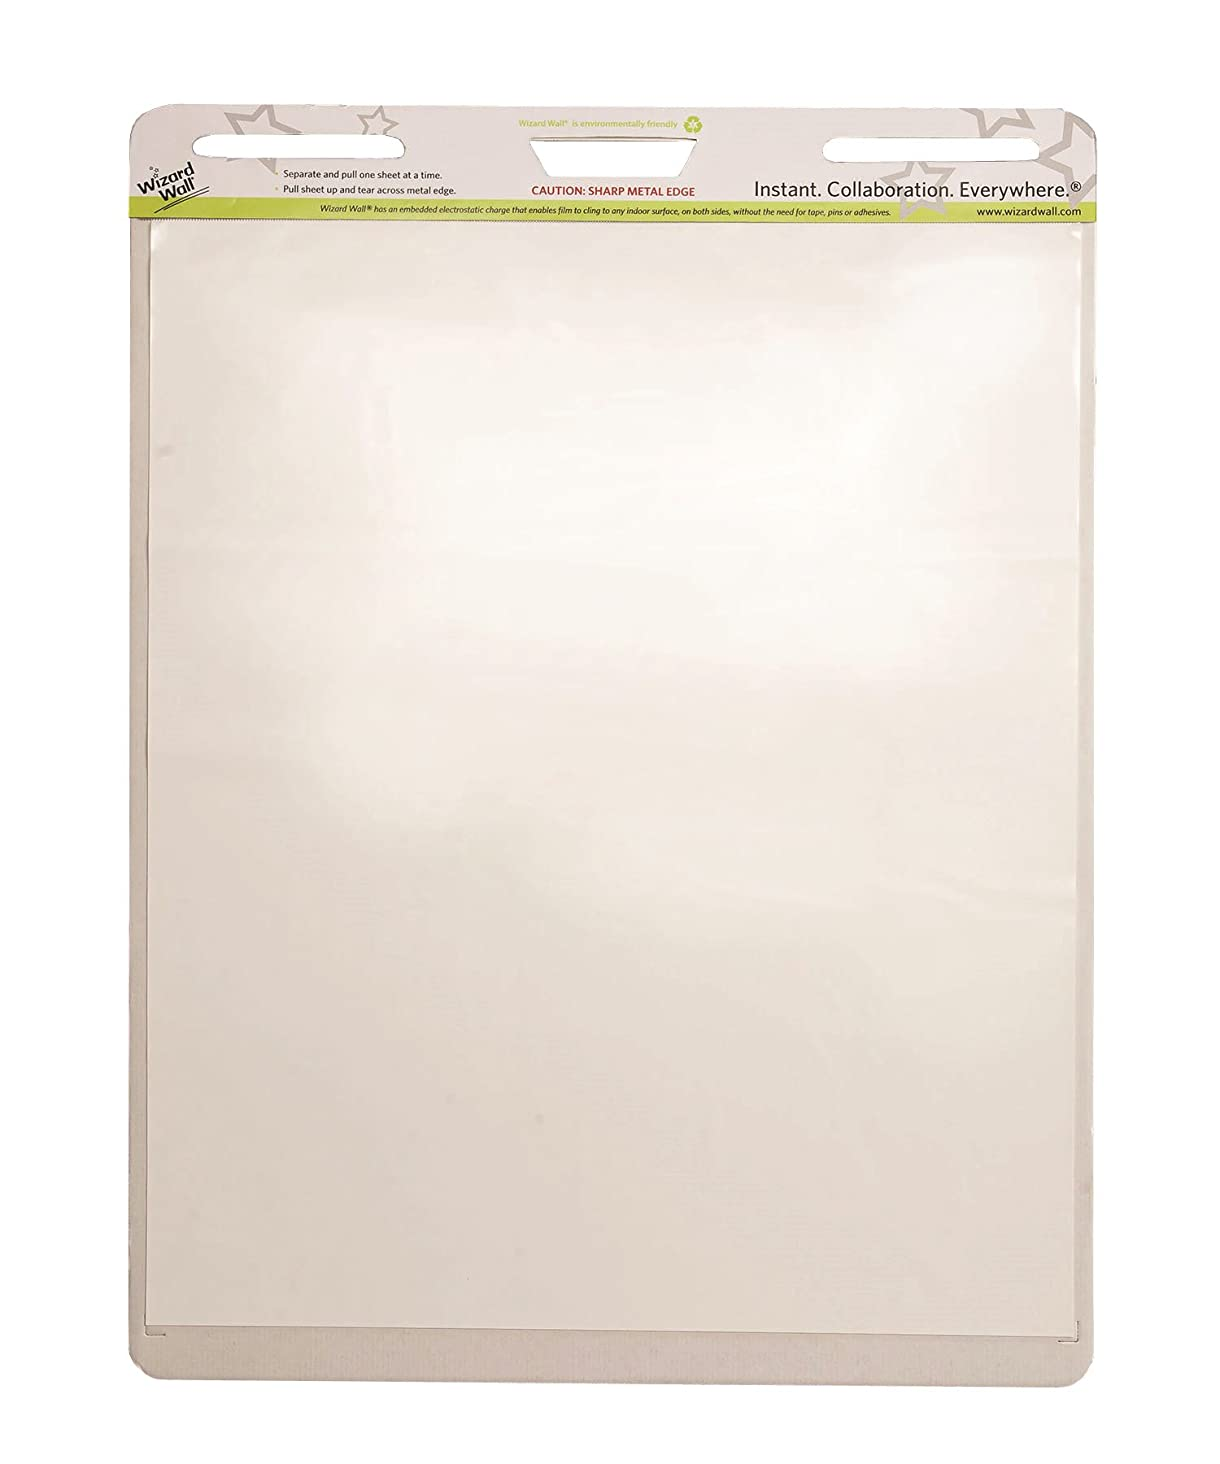 Wizard Wall Dry Erase Easel Pad, 15 Reusable and Self Tearing Easel Pads Sheets Pad, 24